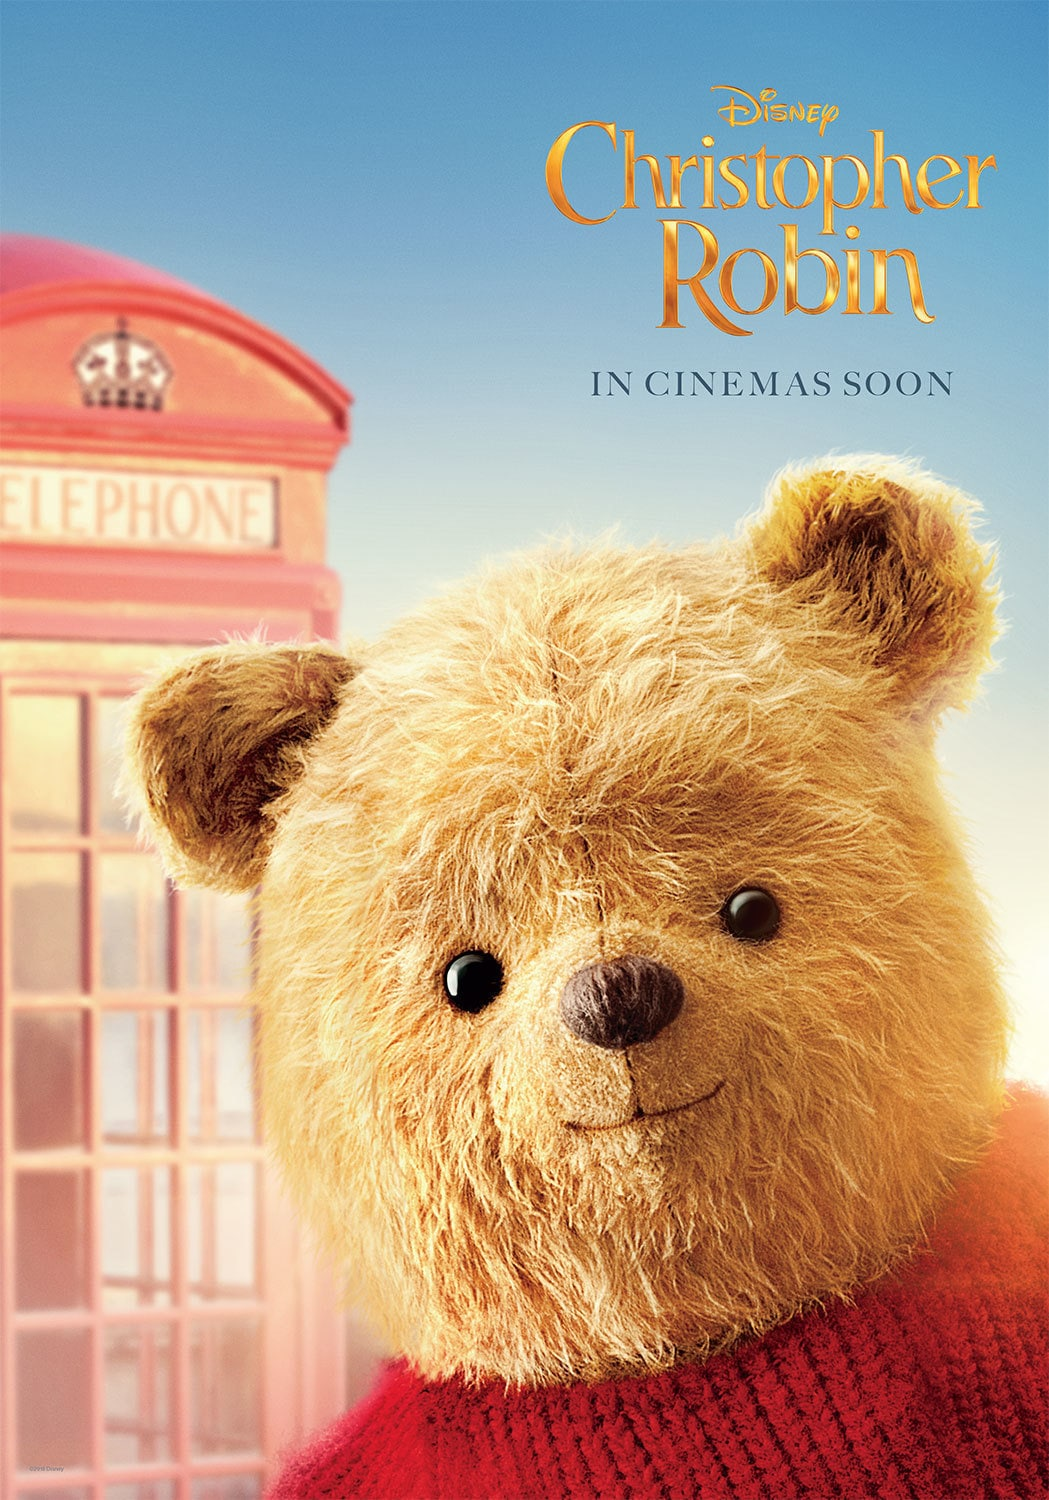 Disney's Christopher Robin - Winnie The Pooh